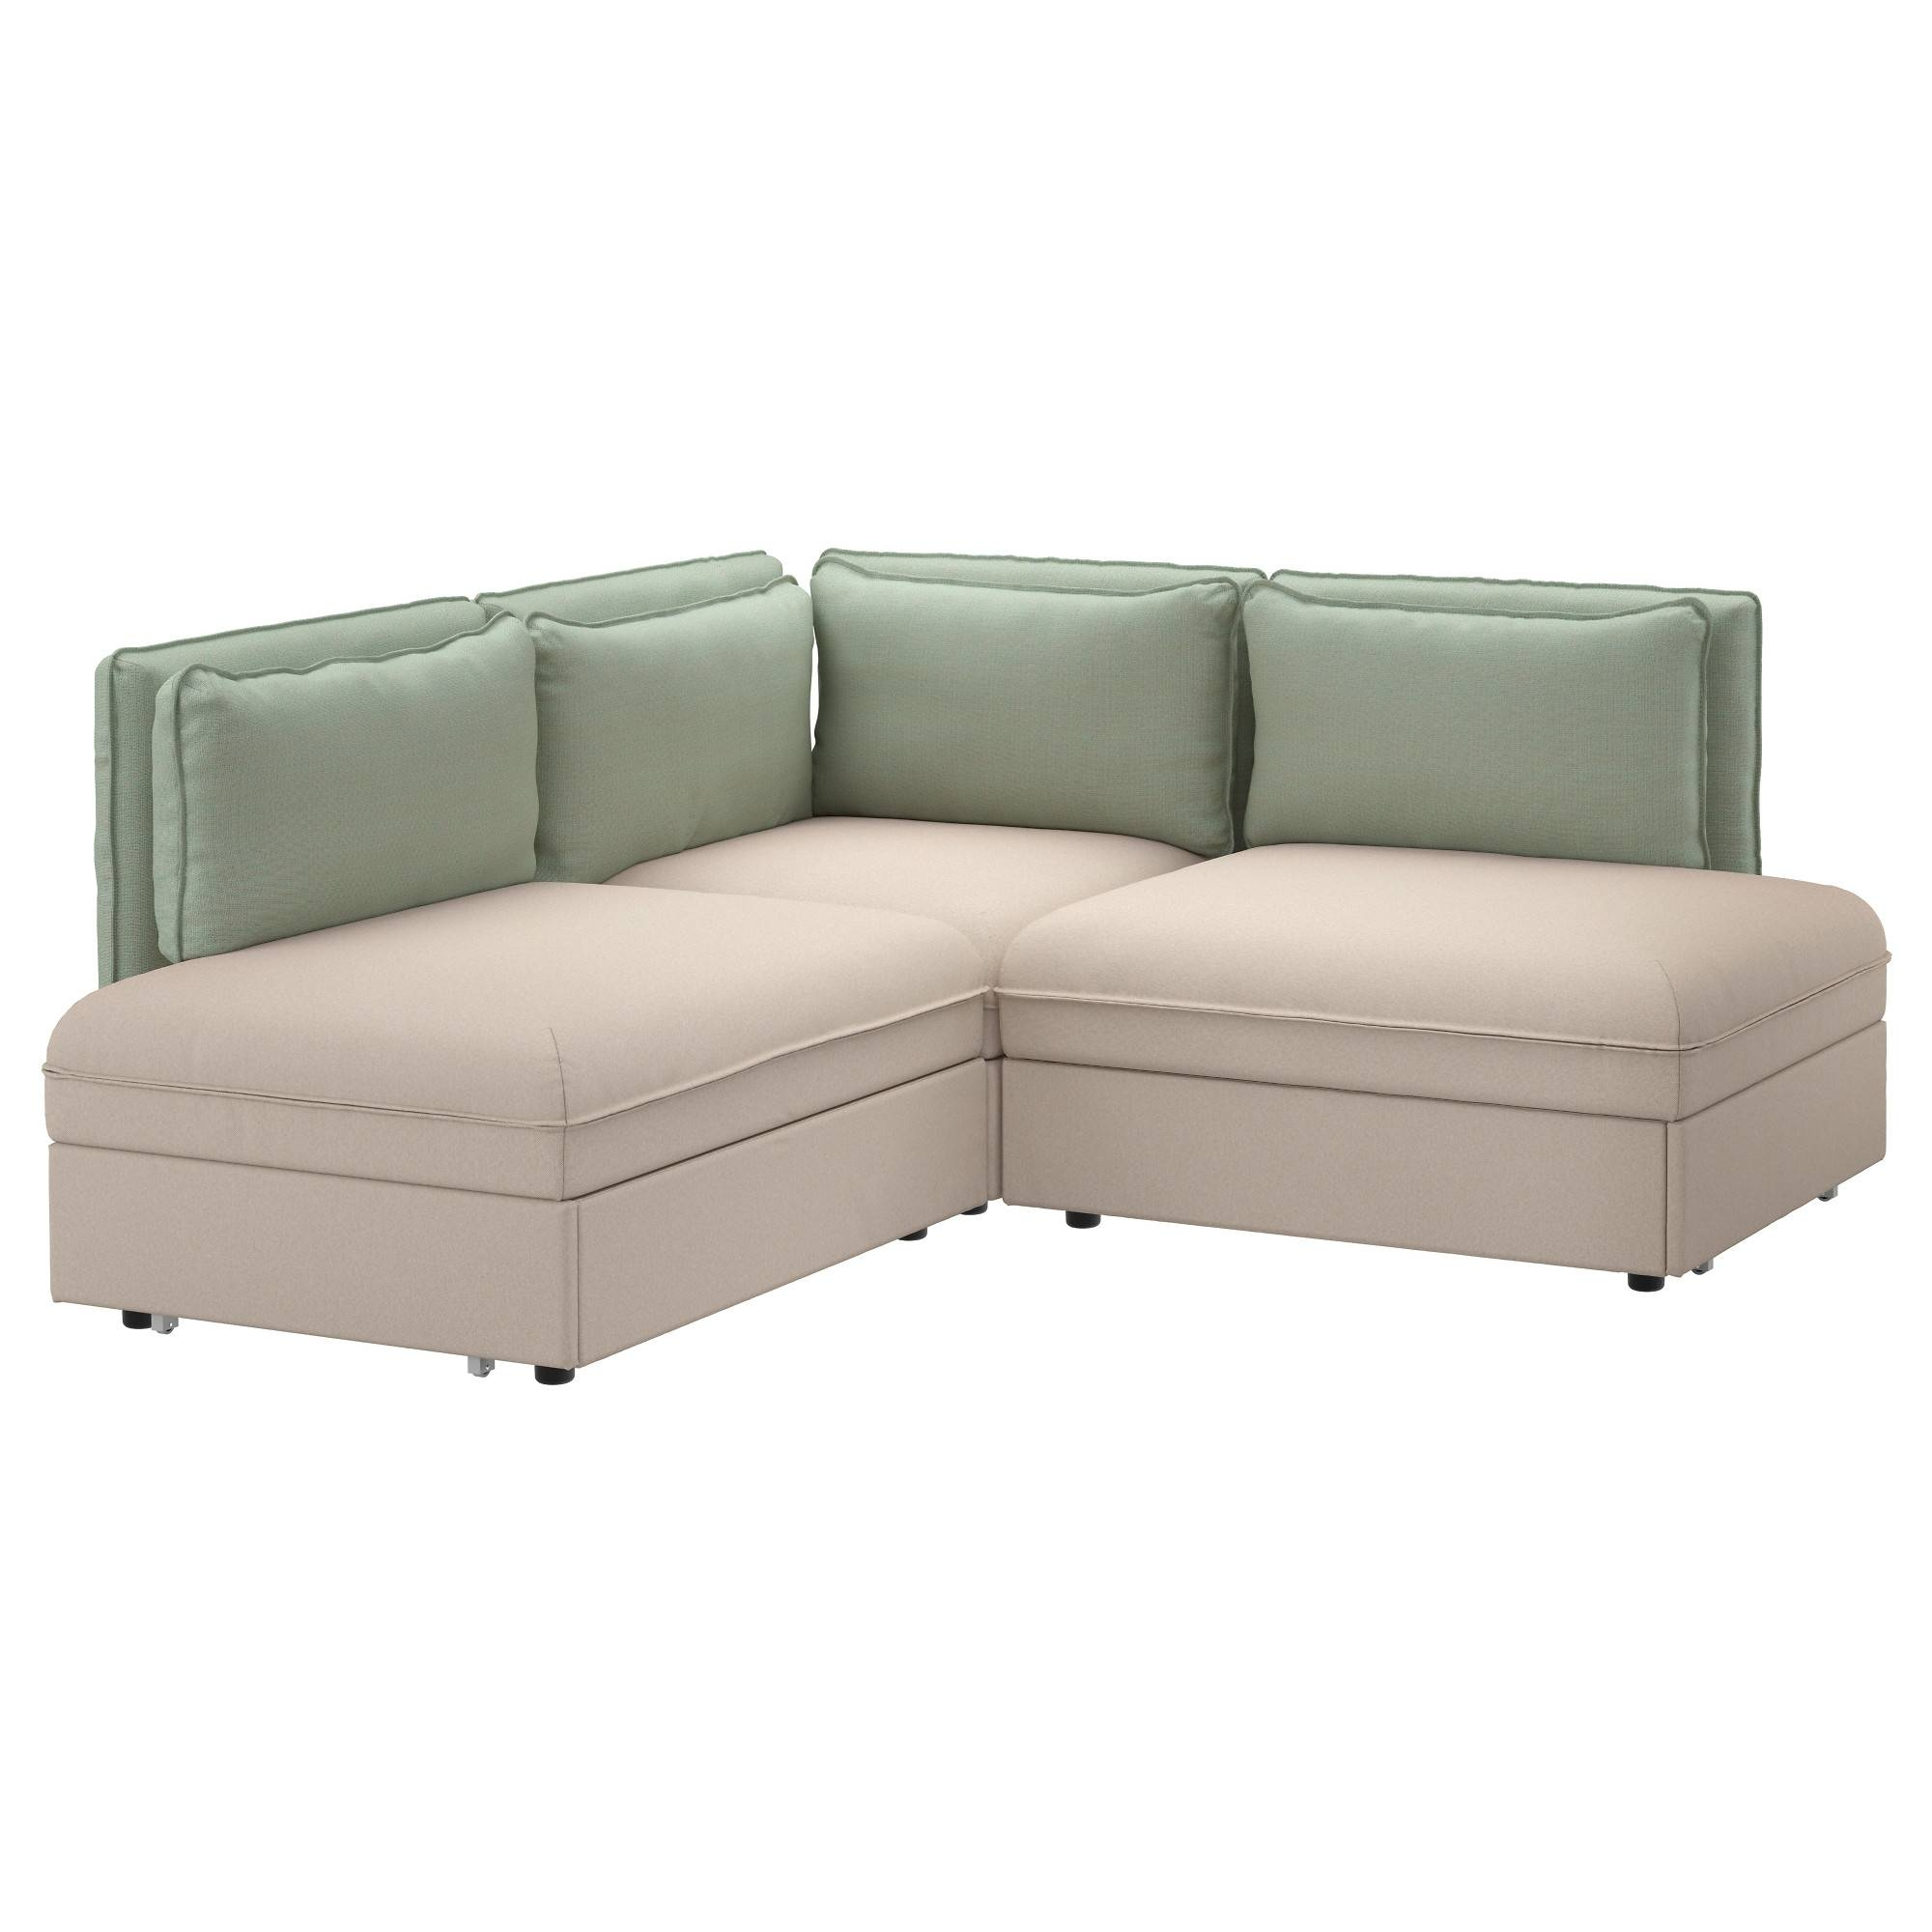 Sofa Beds & Futons - Ikea with regard to Ikea Sectional Sofa Sleeper (Image 22 of 25)